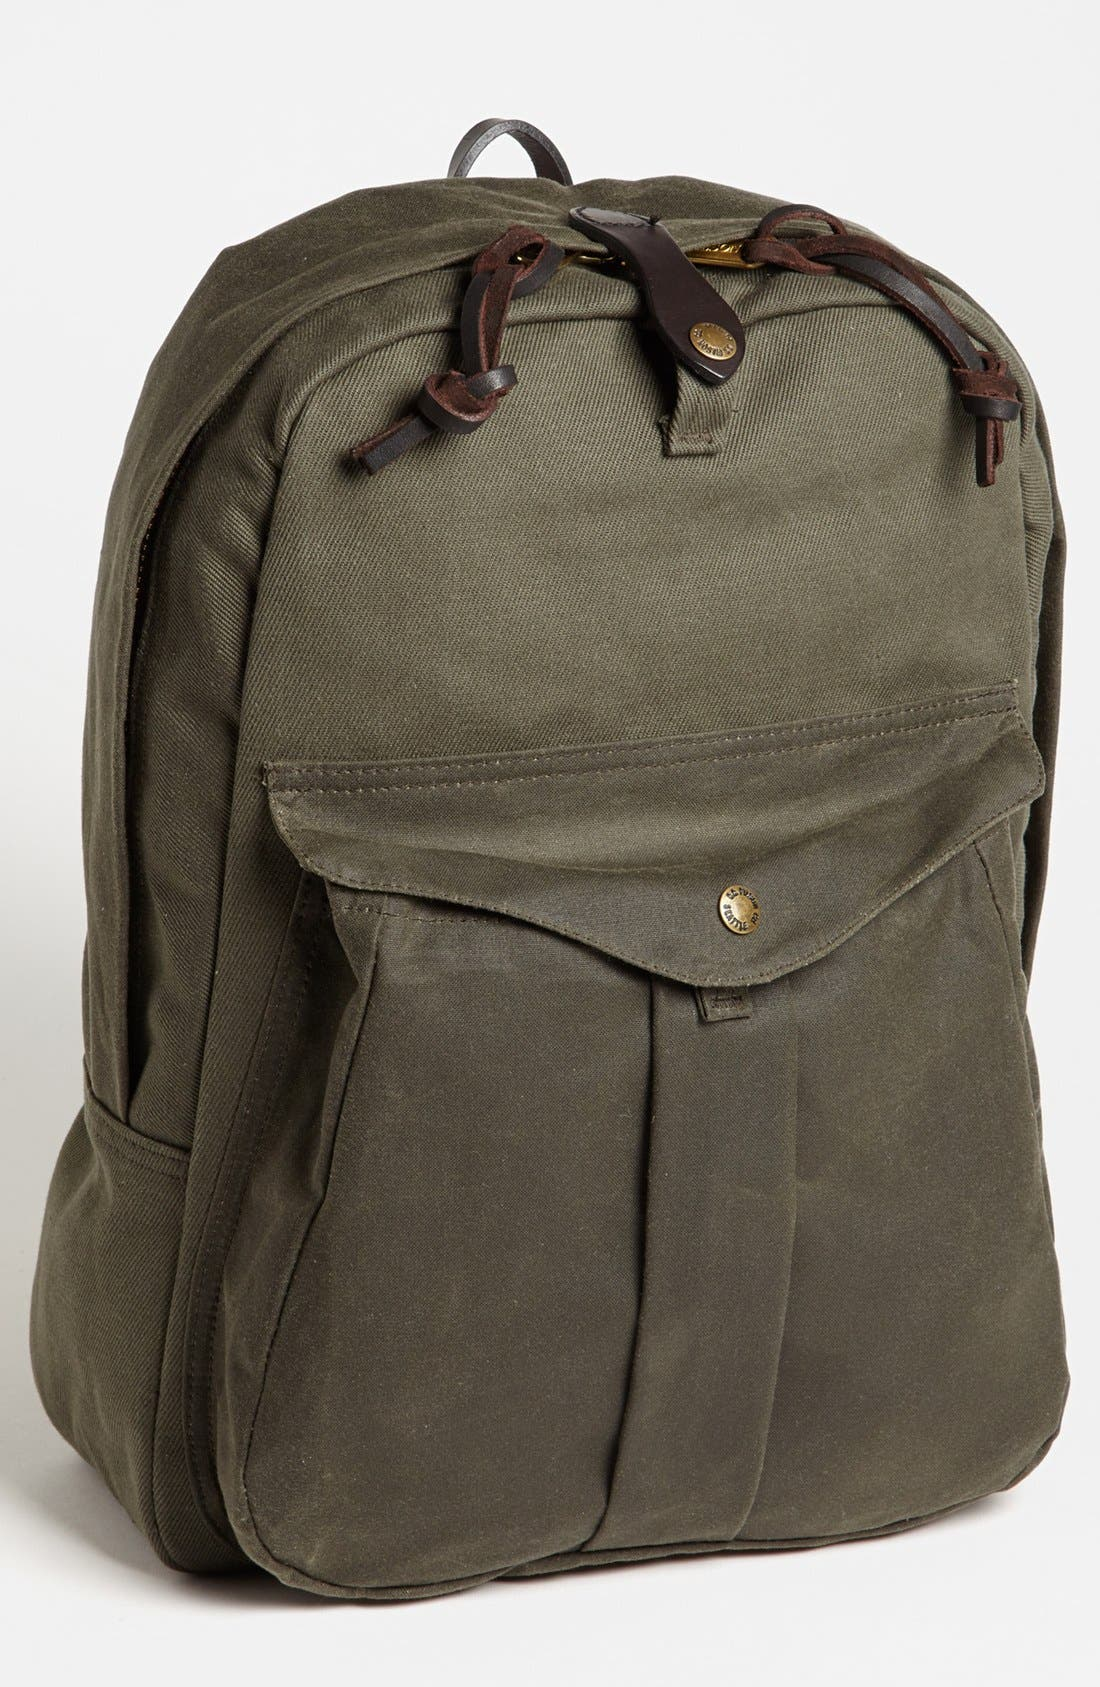 Alternate Image 1 Selected - Filson Twill Backpack